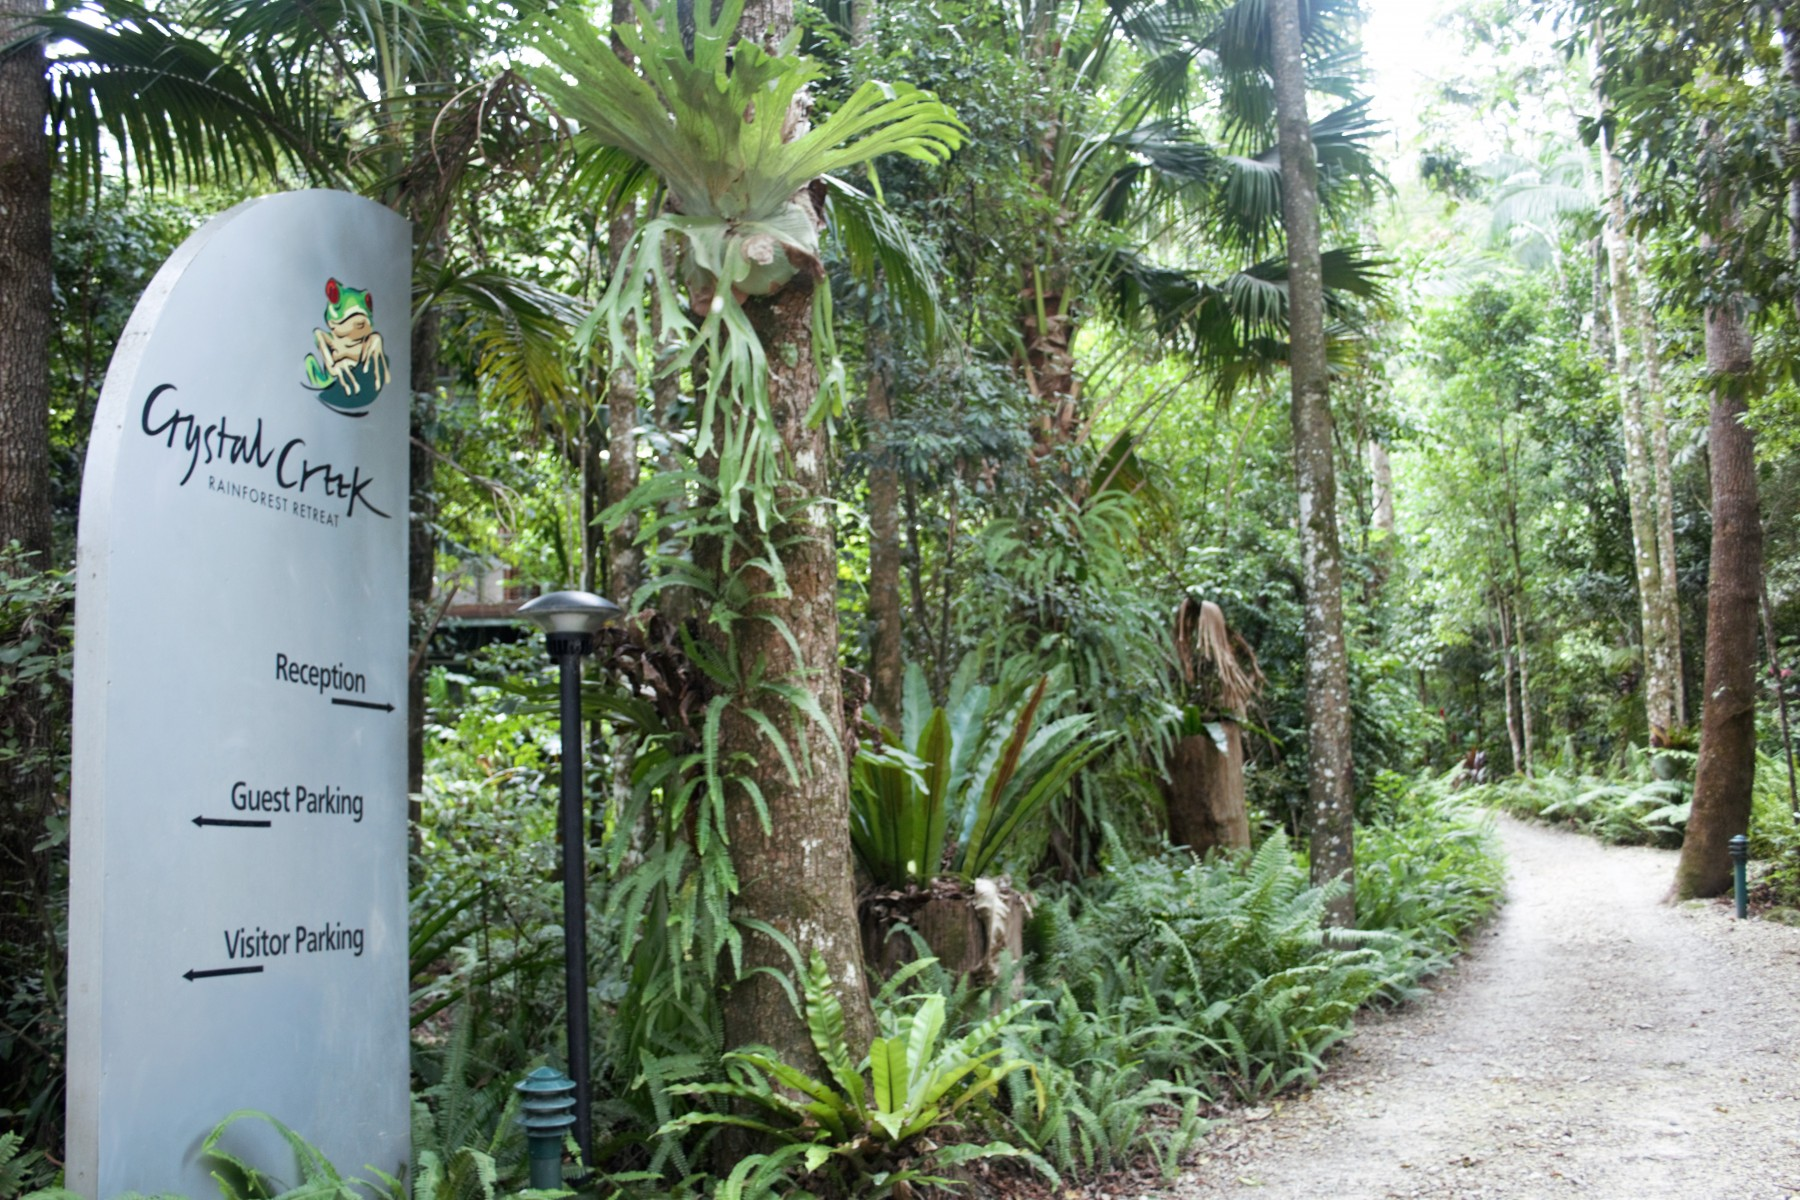 Crystal-Creek-Rainforest-Retreat-Check-In.-Image-Kate-Webster